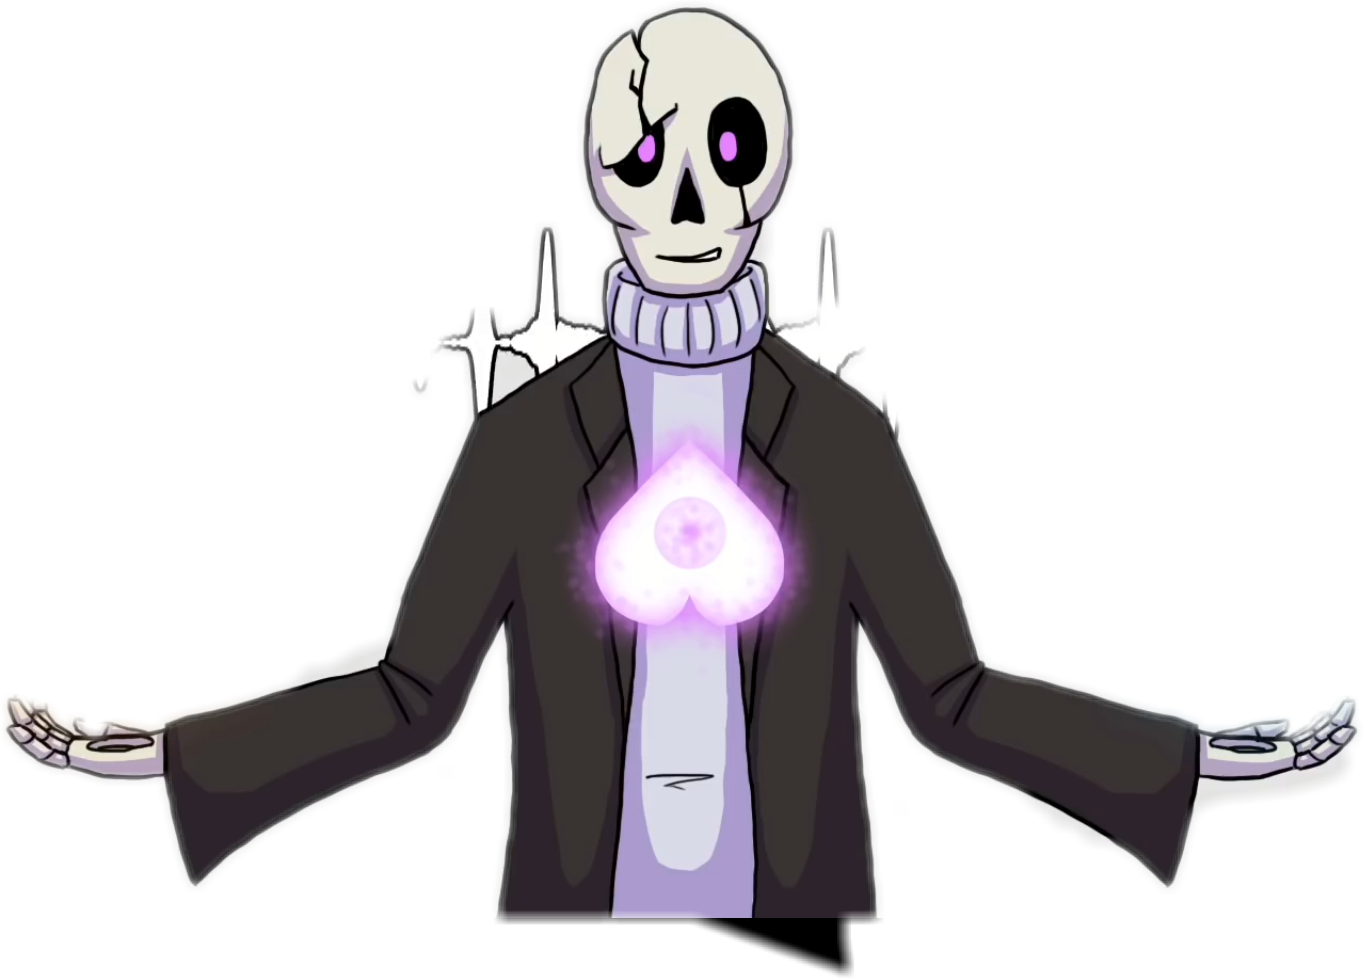 Echo drawing vocaloid. This is a gaster